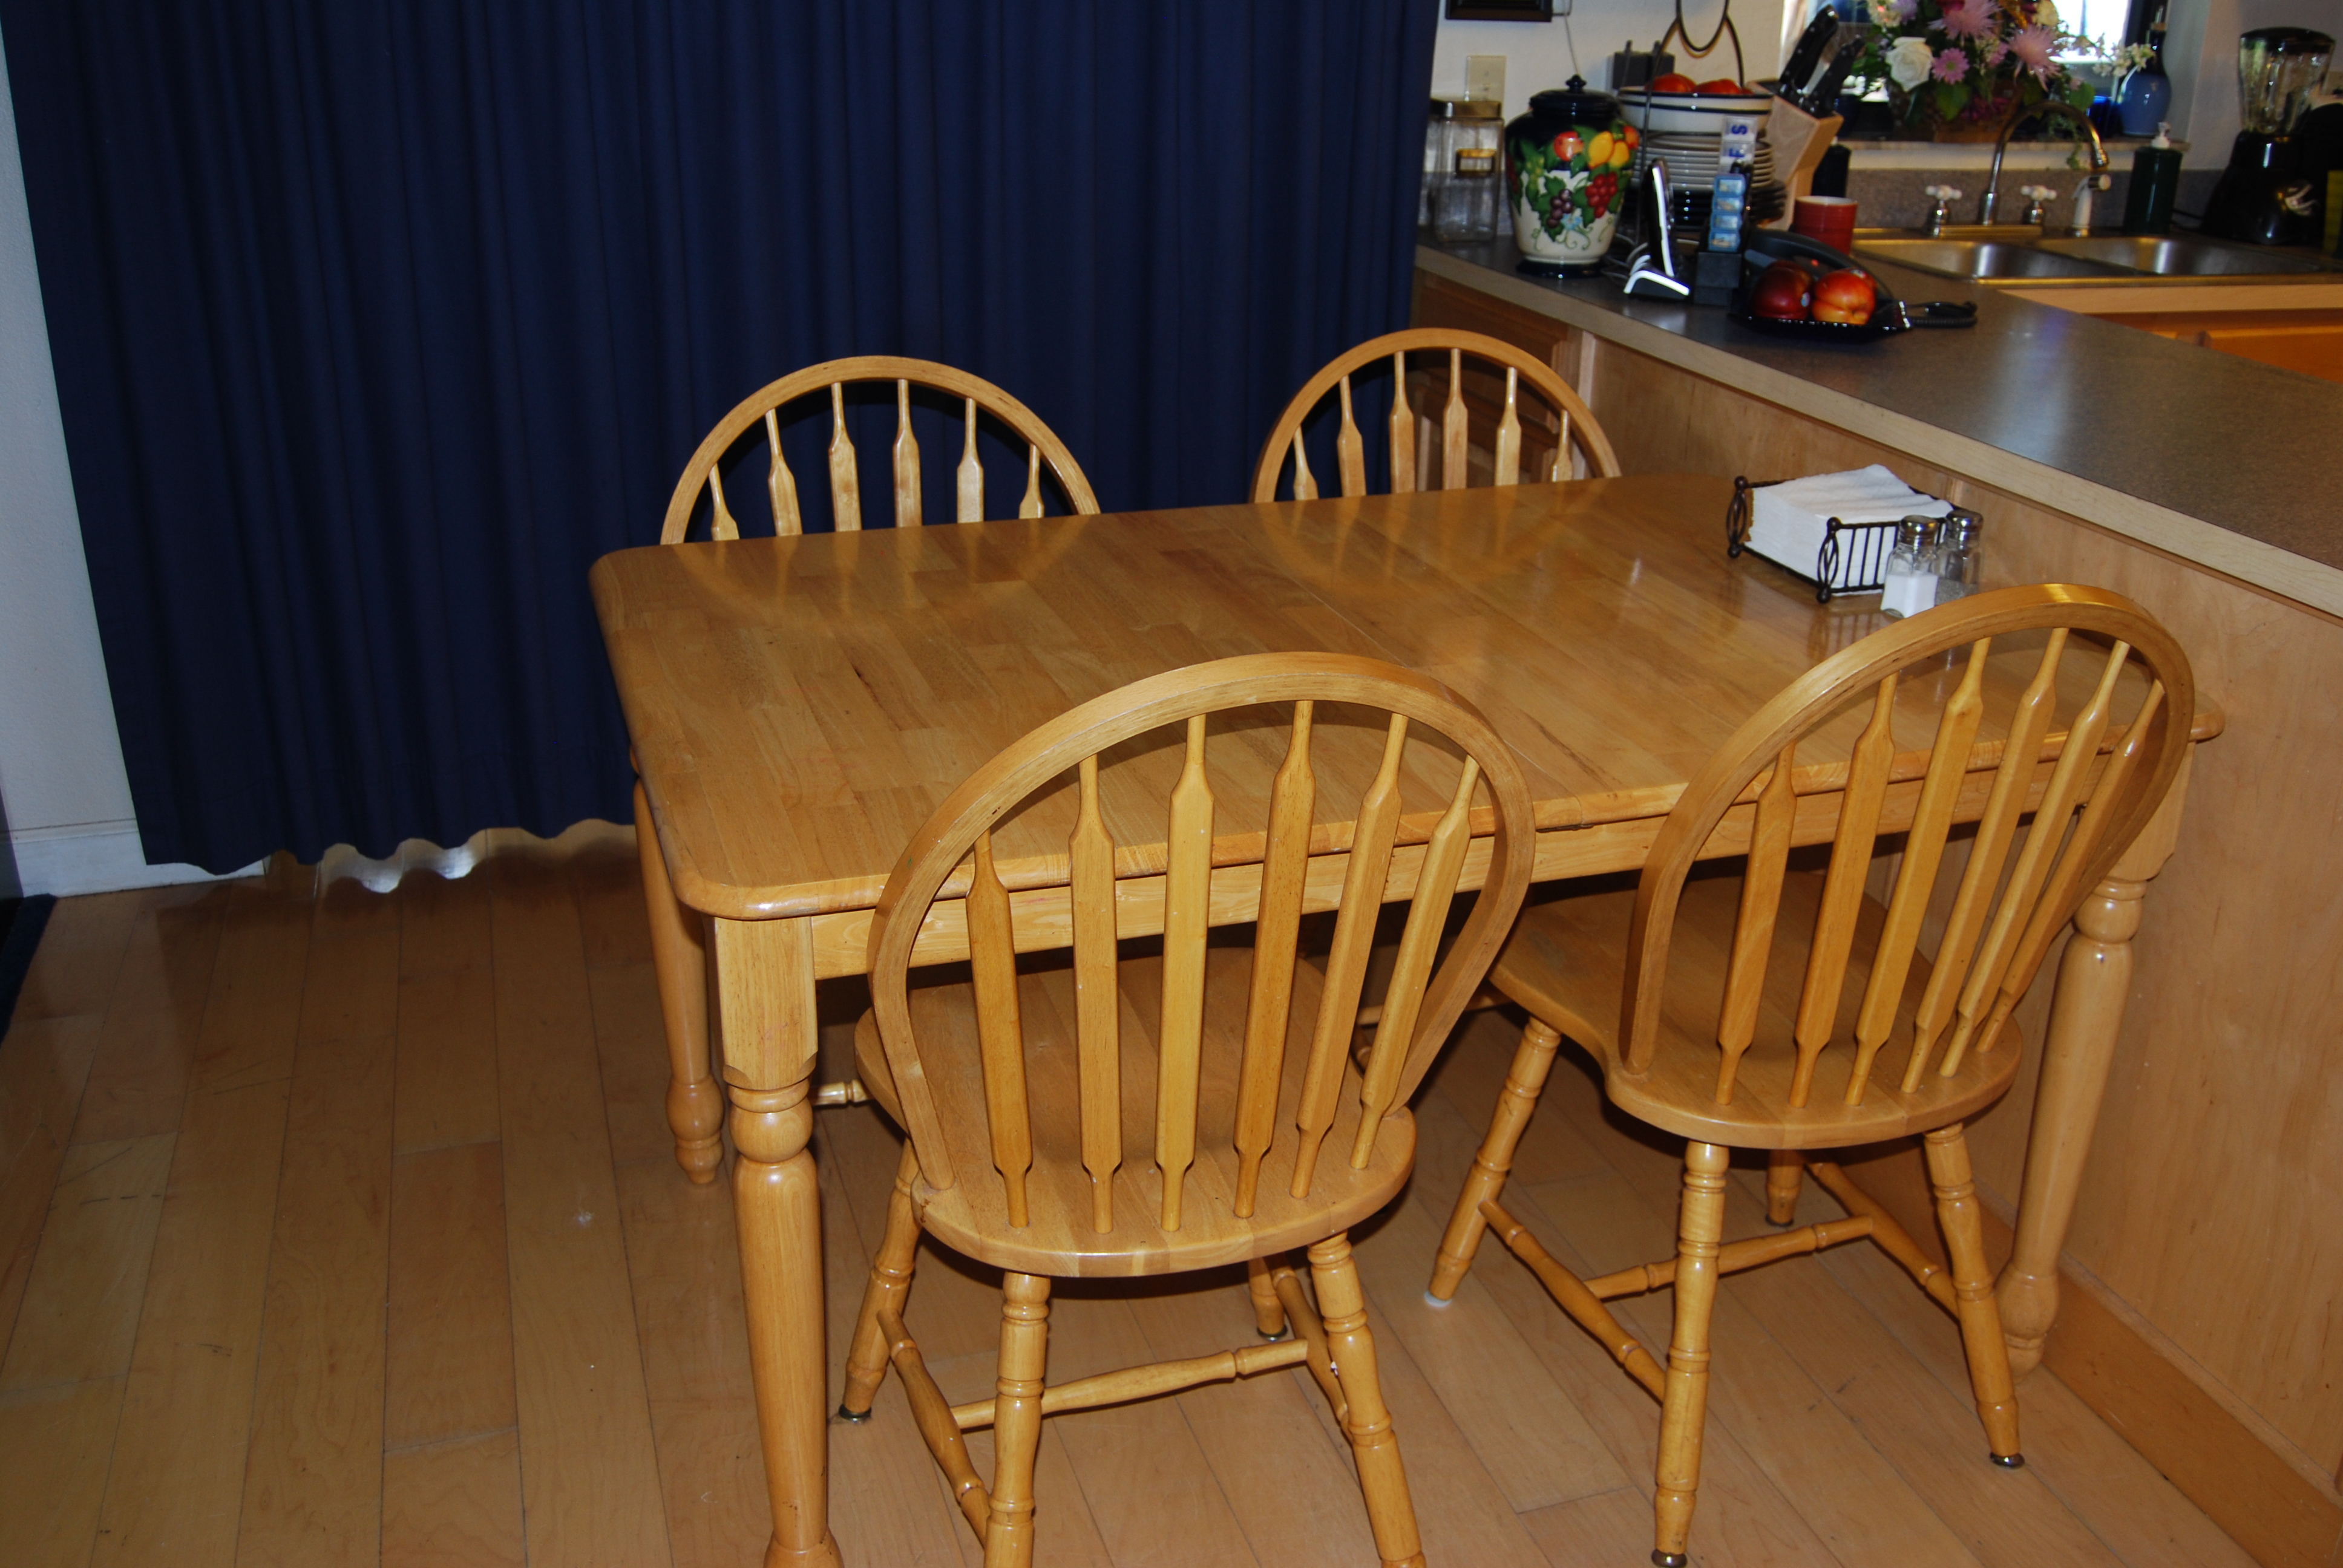 painted kitchen tables and chairs painted kitchen tables Great Kitchen Table Chairs kB jpeg